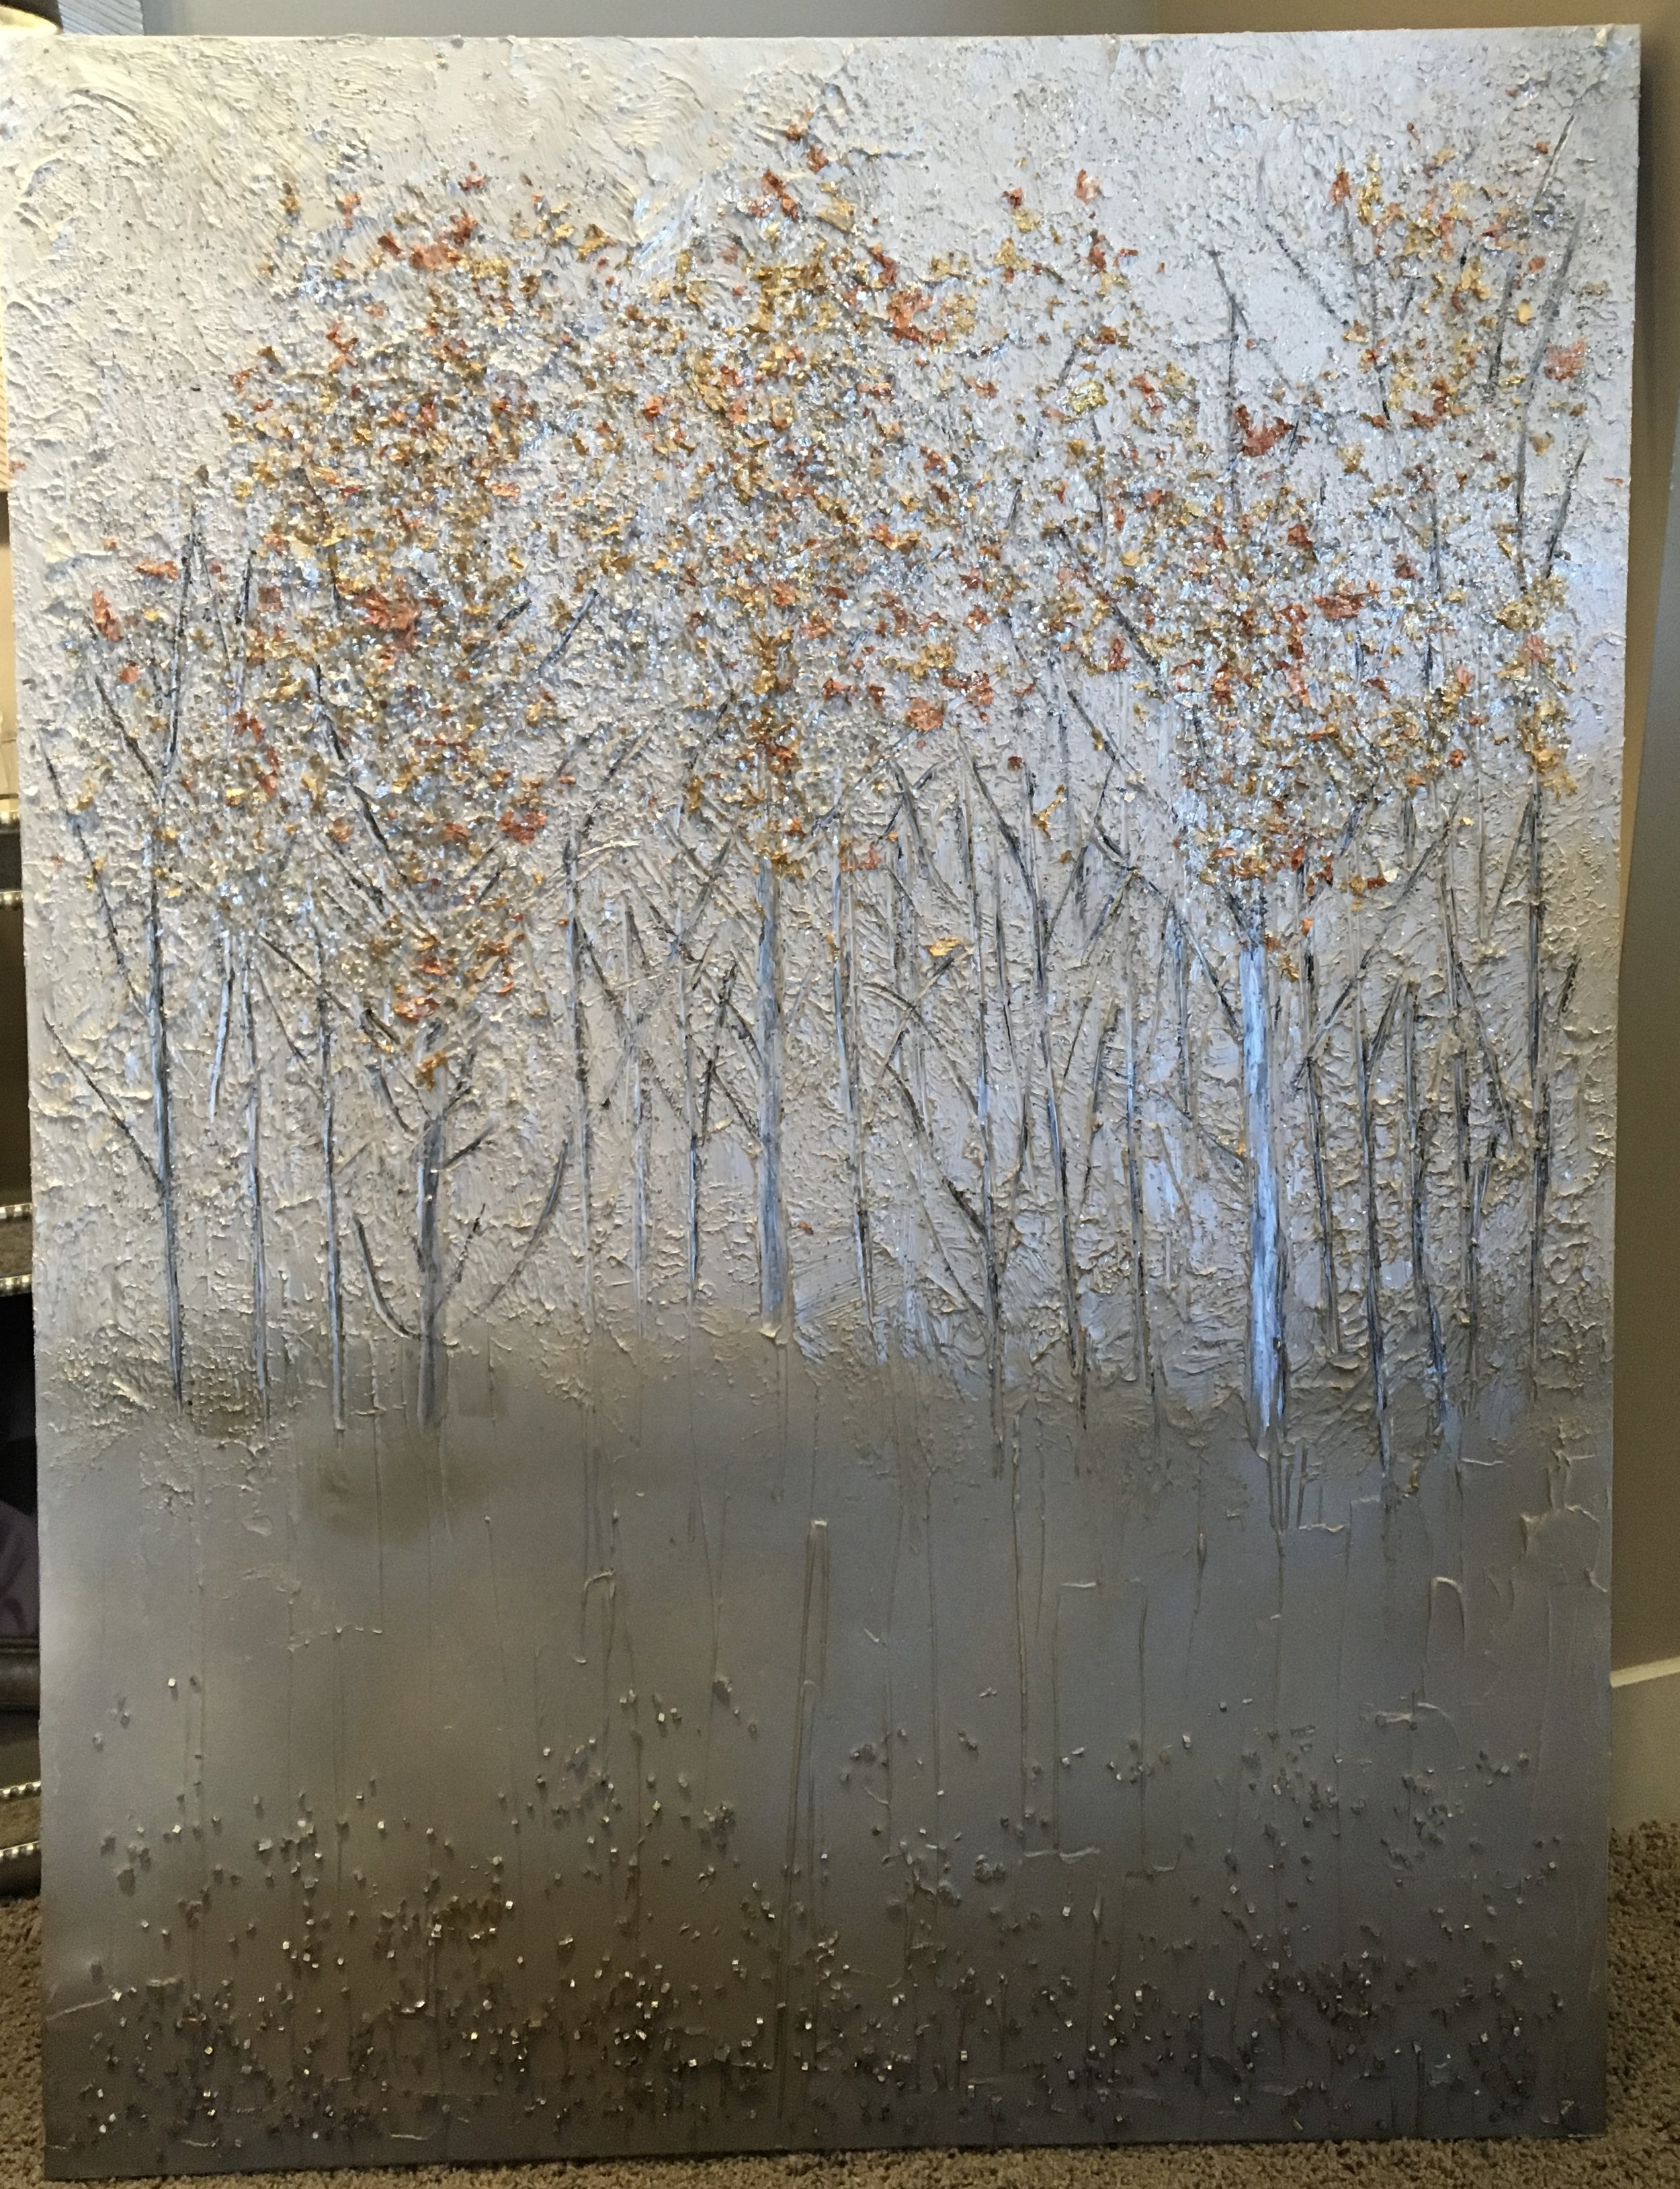 Part of the Tranquil Collection, these contemporary trees remind one of the beautiful aspens whispering their secrets.